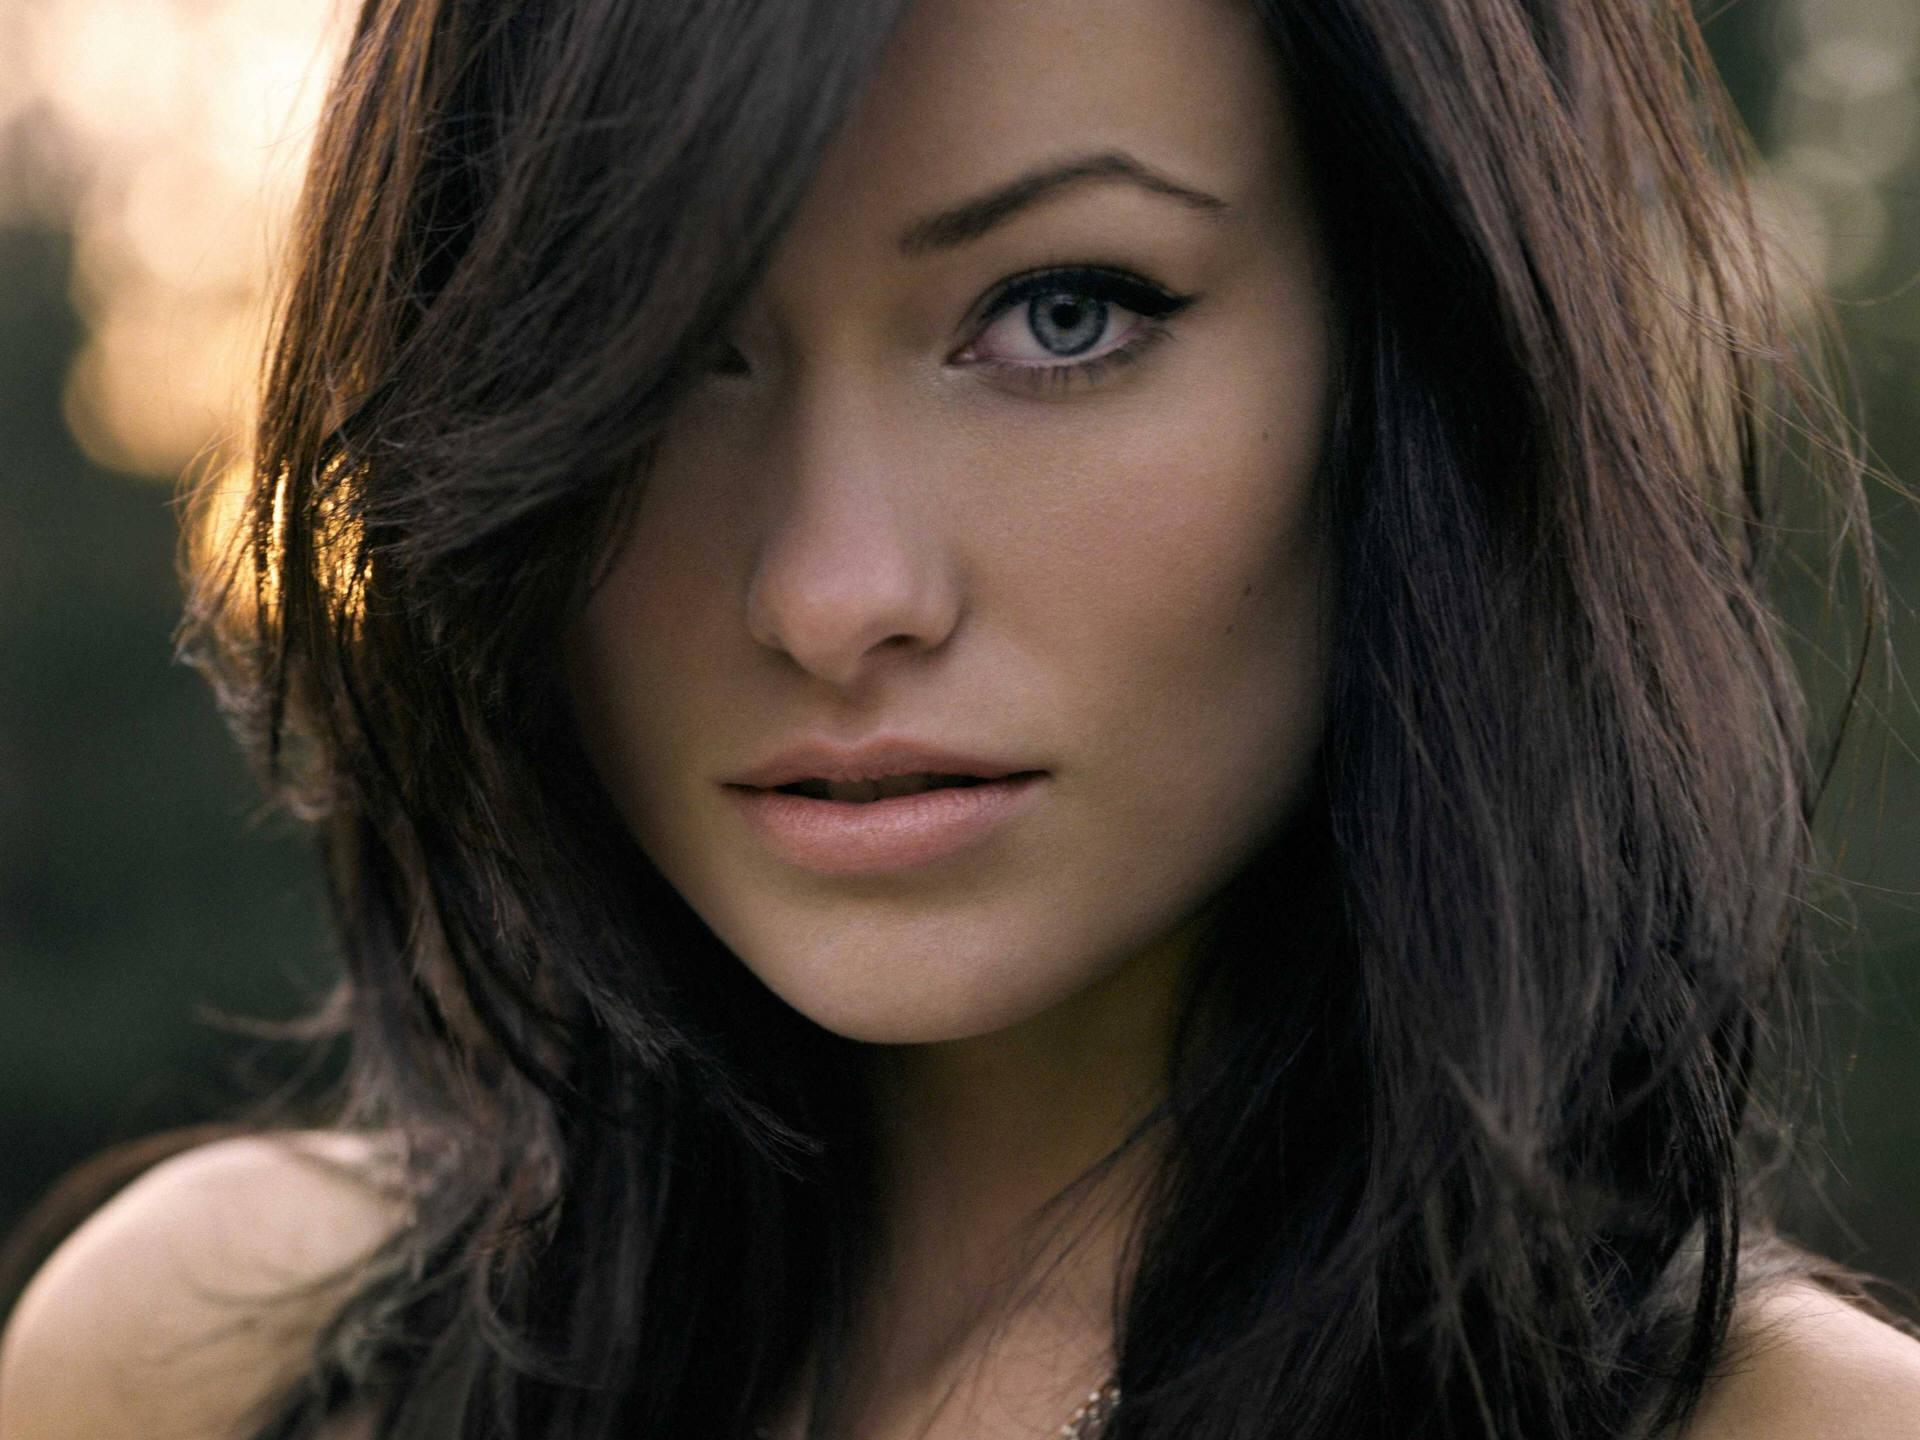 brunettes women actress Olivia Wilde celebrity faces - Wallpaper (#860924) / Wallbase.cc